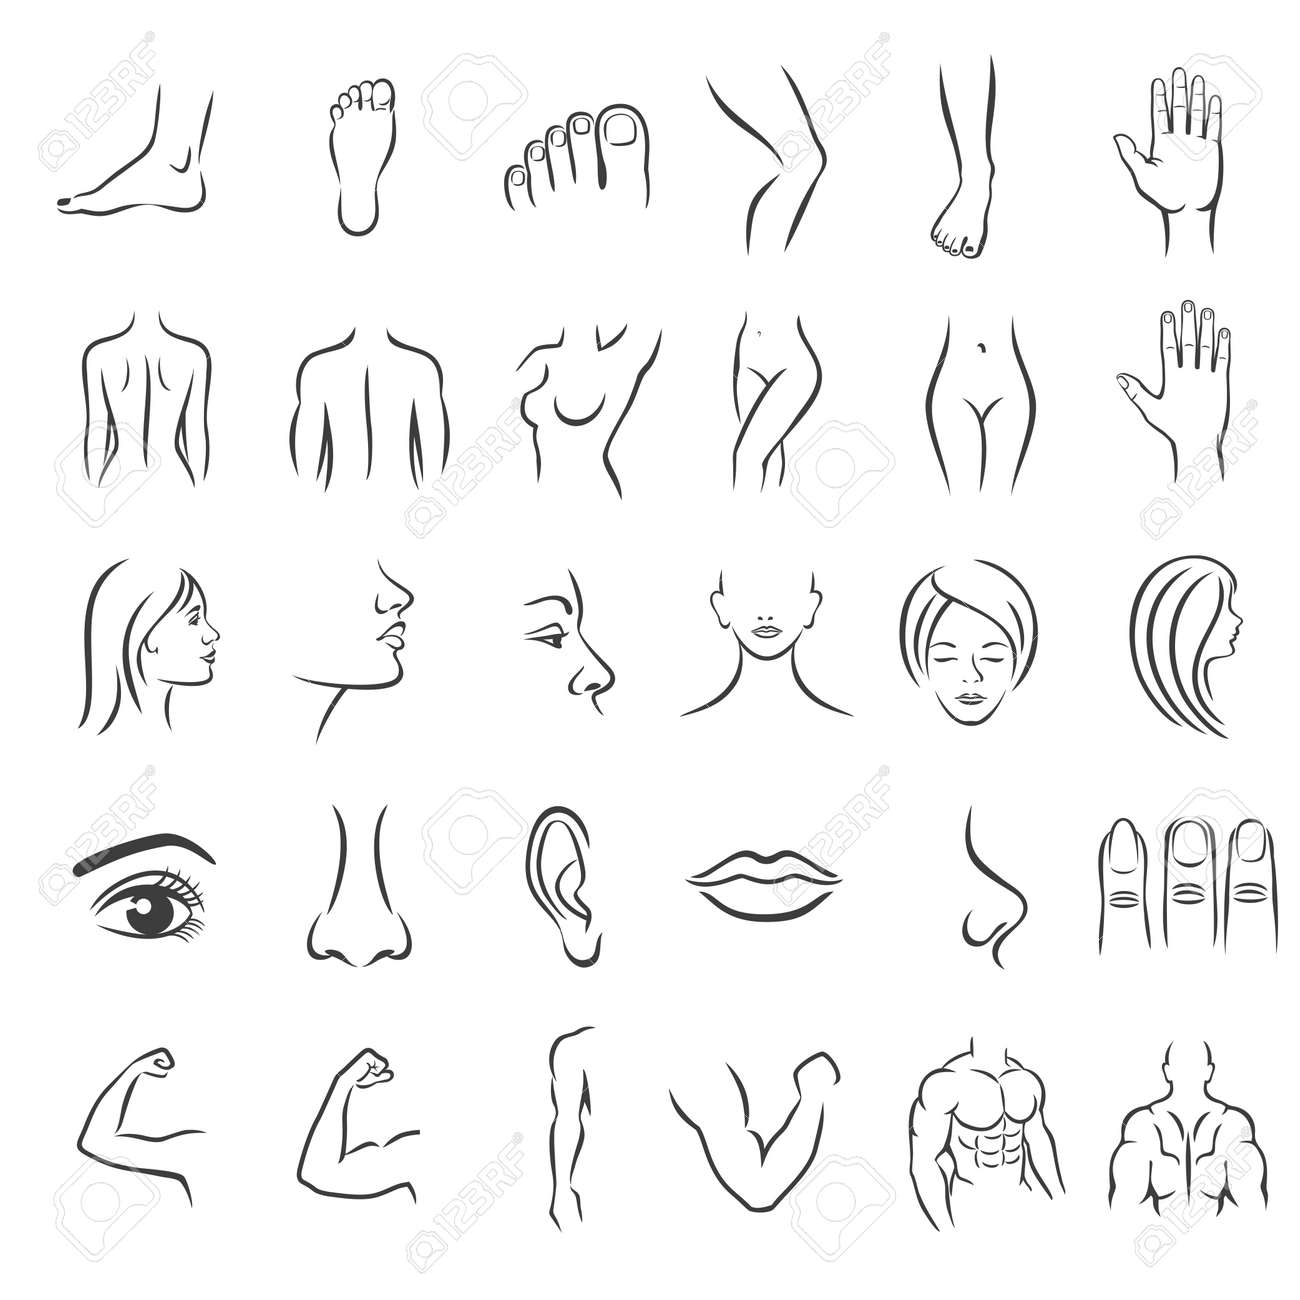 human body parts icons plastic face surgery medical vector royalty free cliparts vectors and stock illustration image 131423809 human body parts icons plastic face surgery medical vector